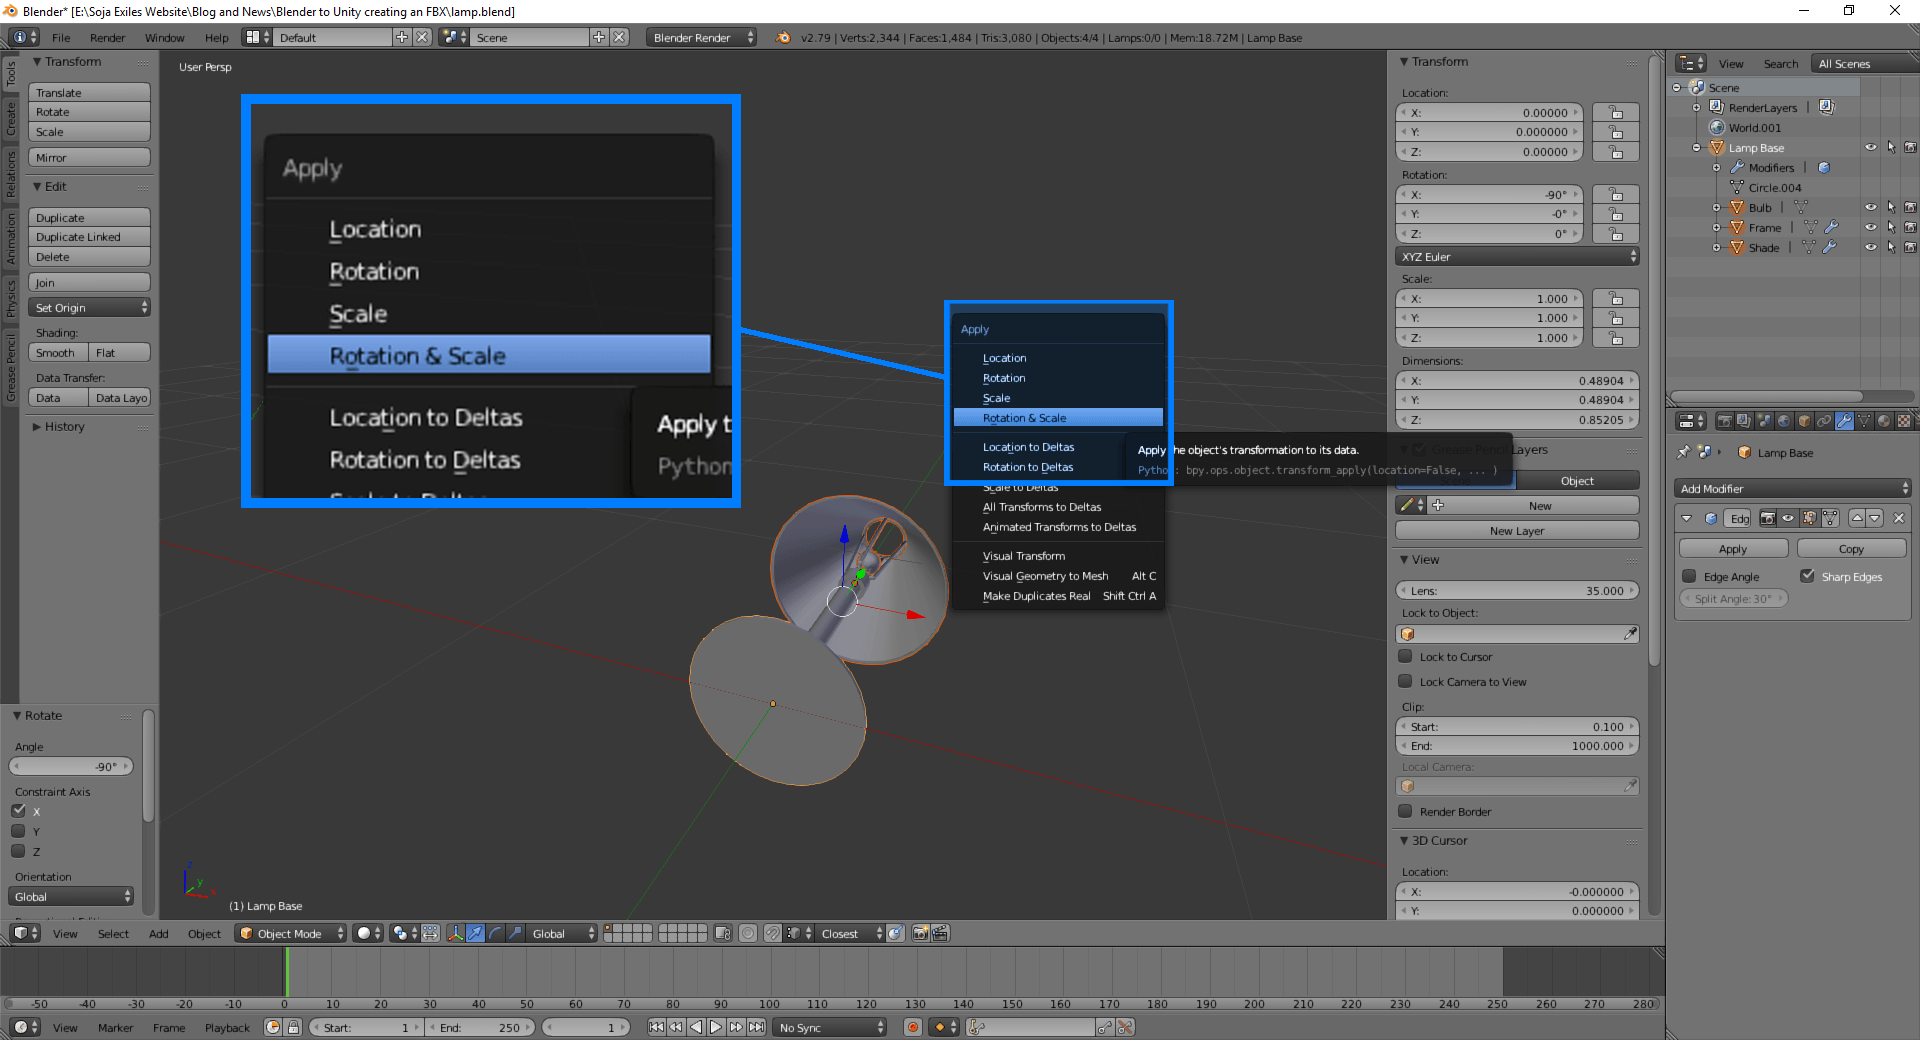 Footage Frame R Fbx Import Options - Berkshireregion